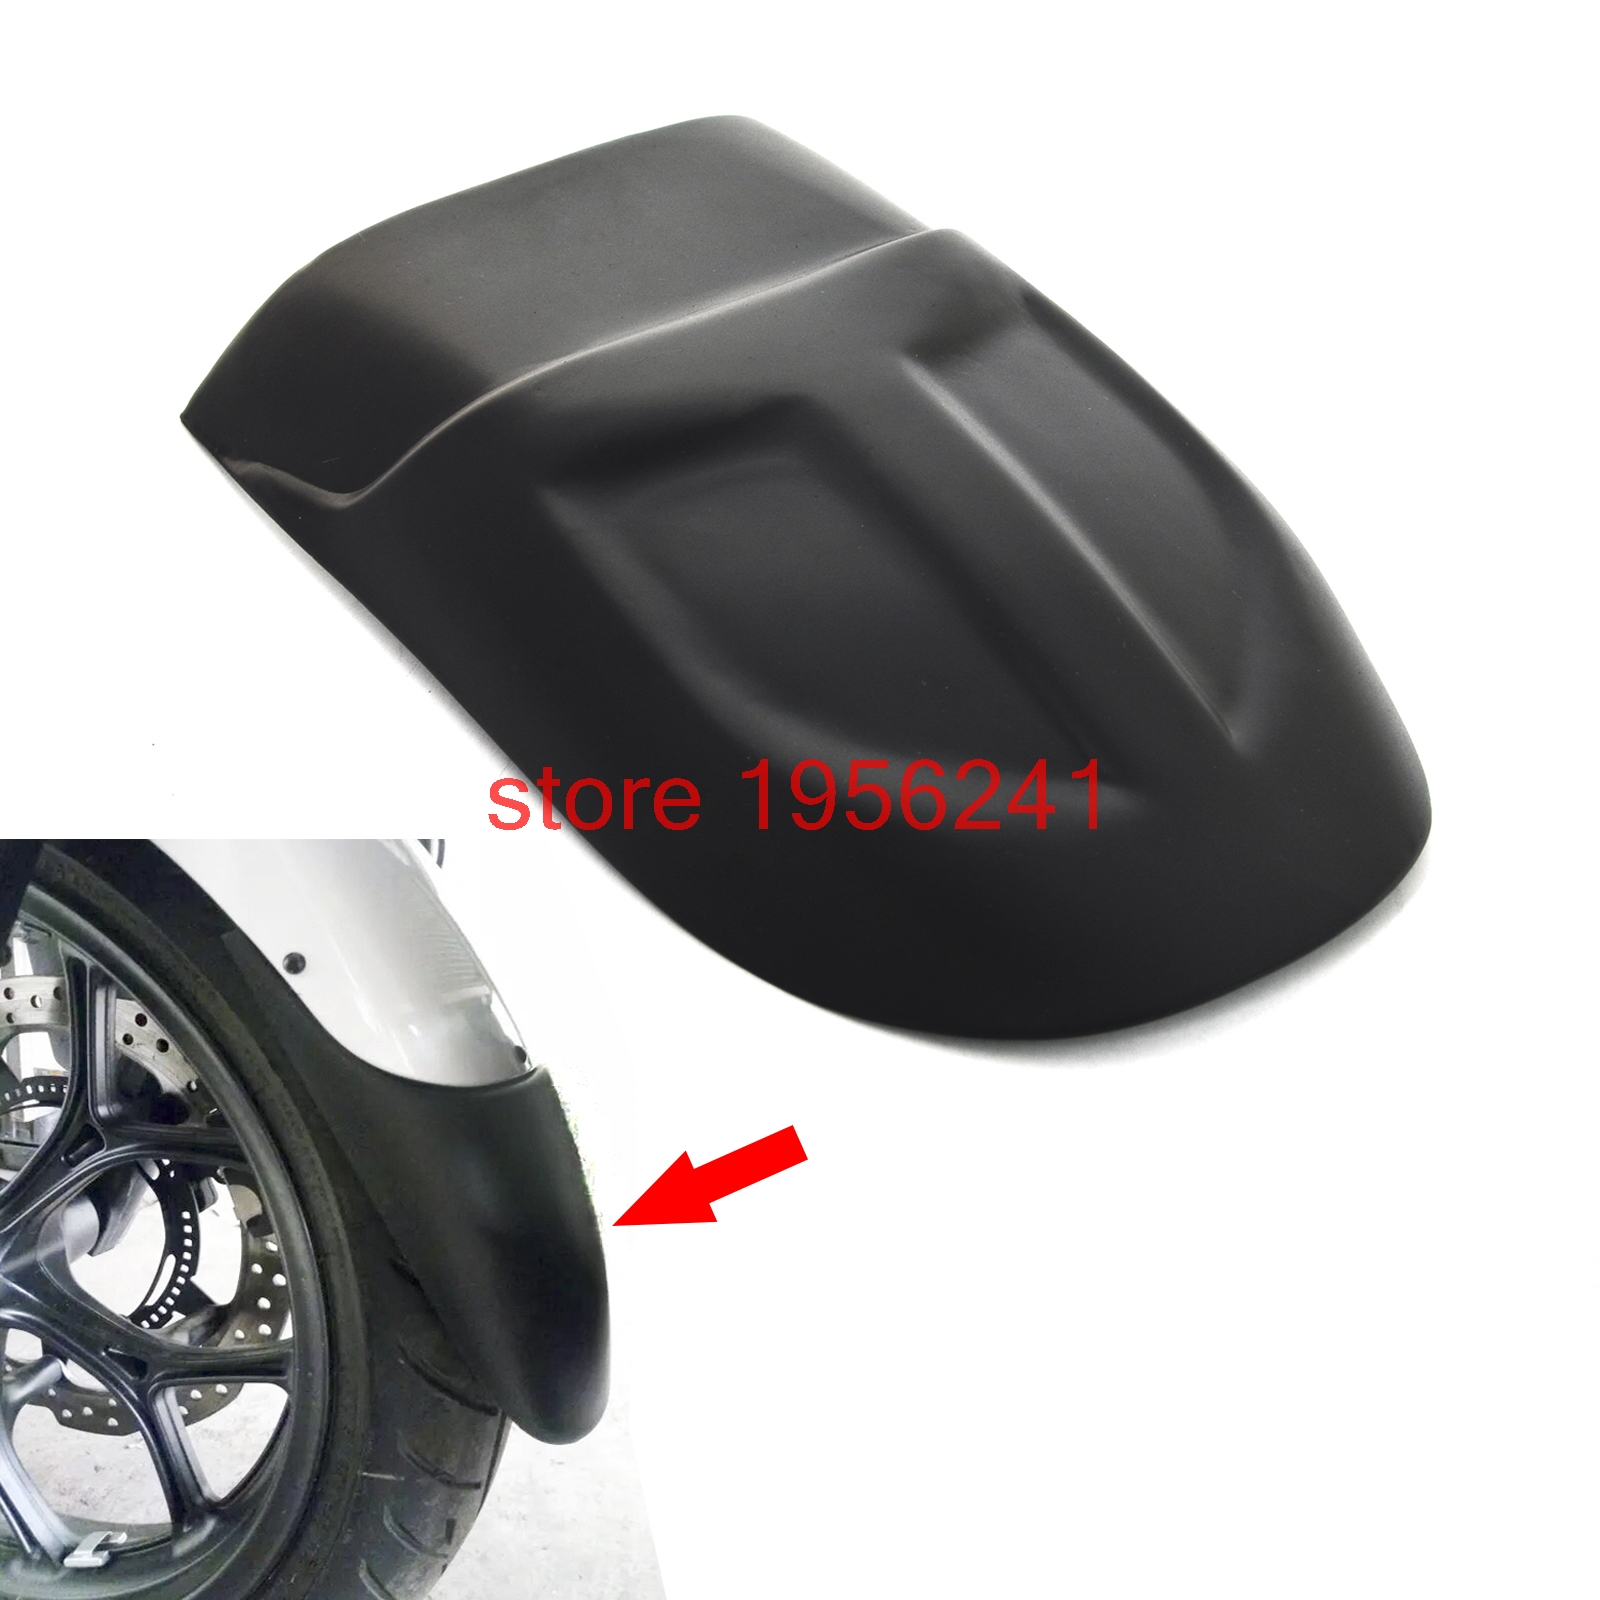 Motorcycle Front fender Extension Extender for BMW F700GS 2012 - 2015 2013 2014 F700 GS motorcycle front fender extension extender for honda crf1000l 2016 2017